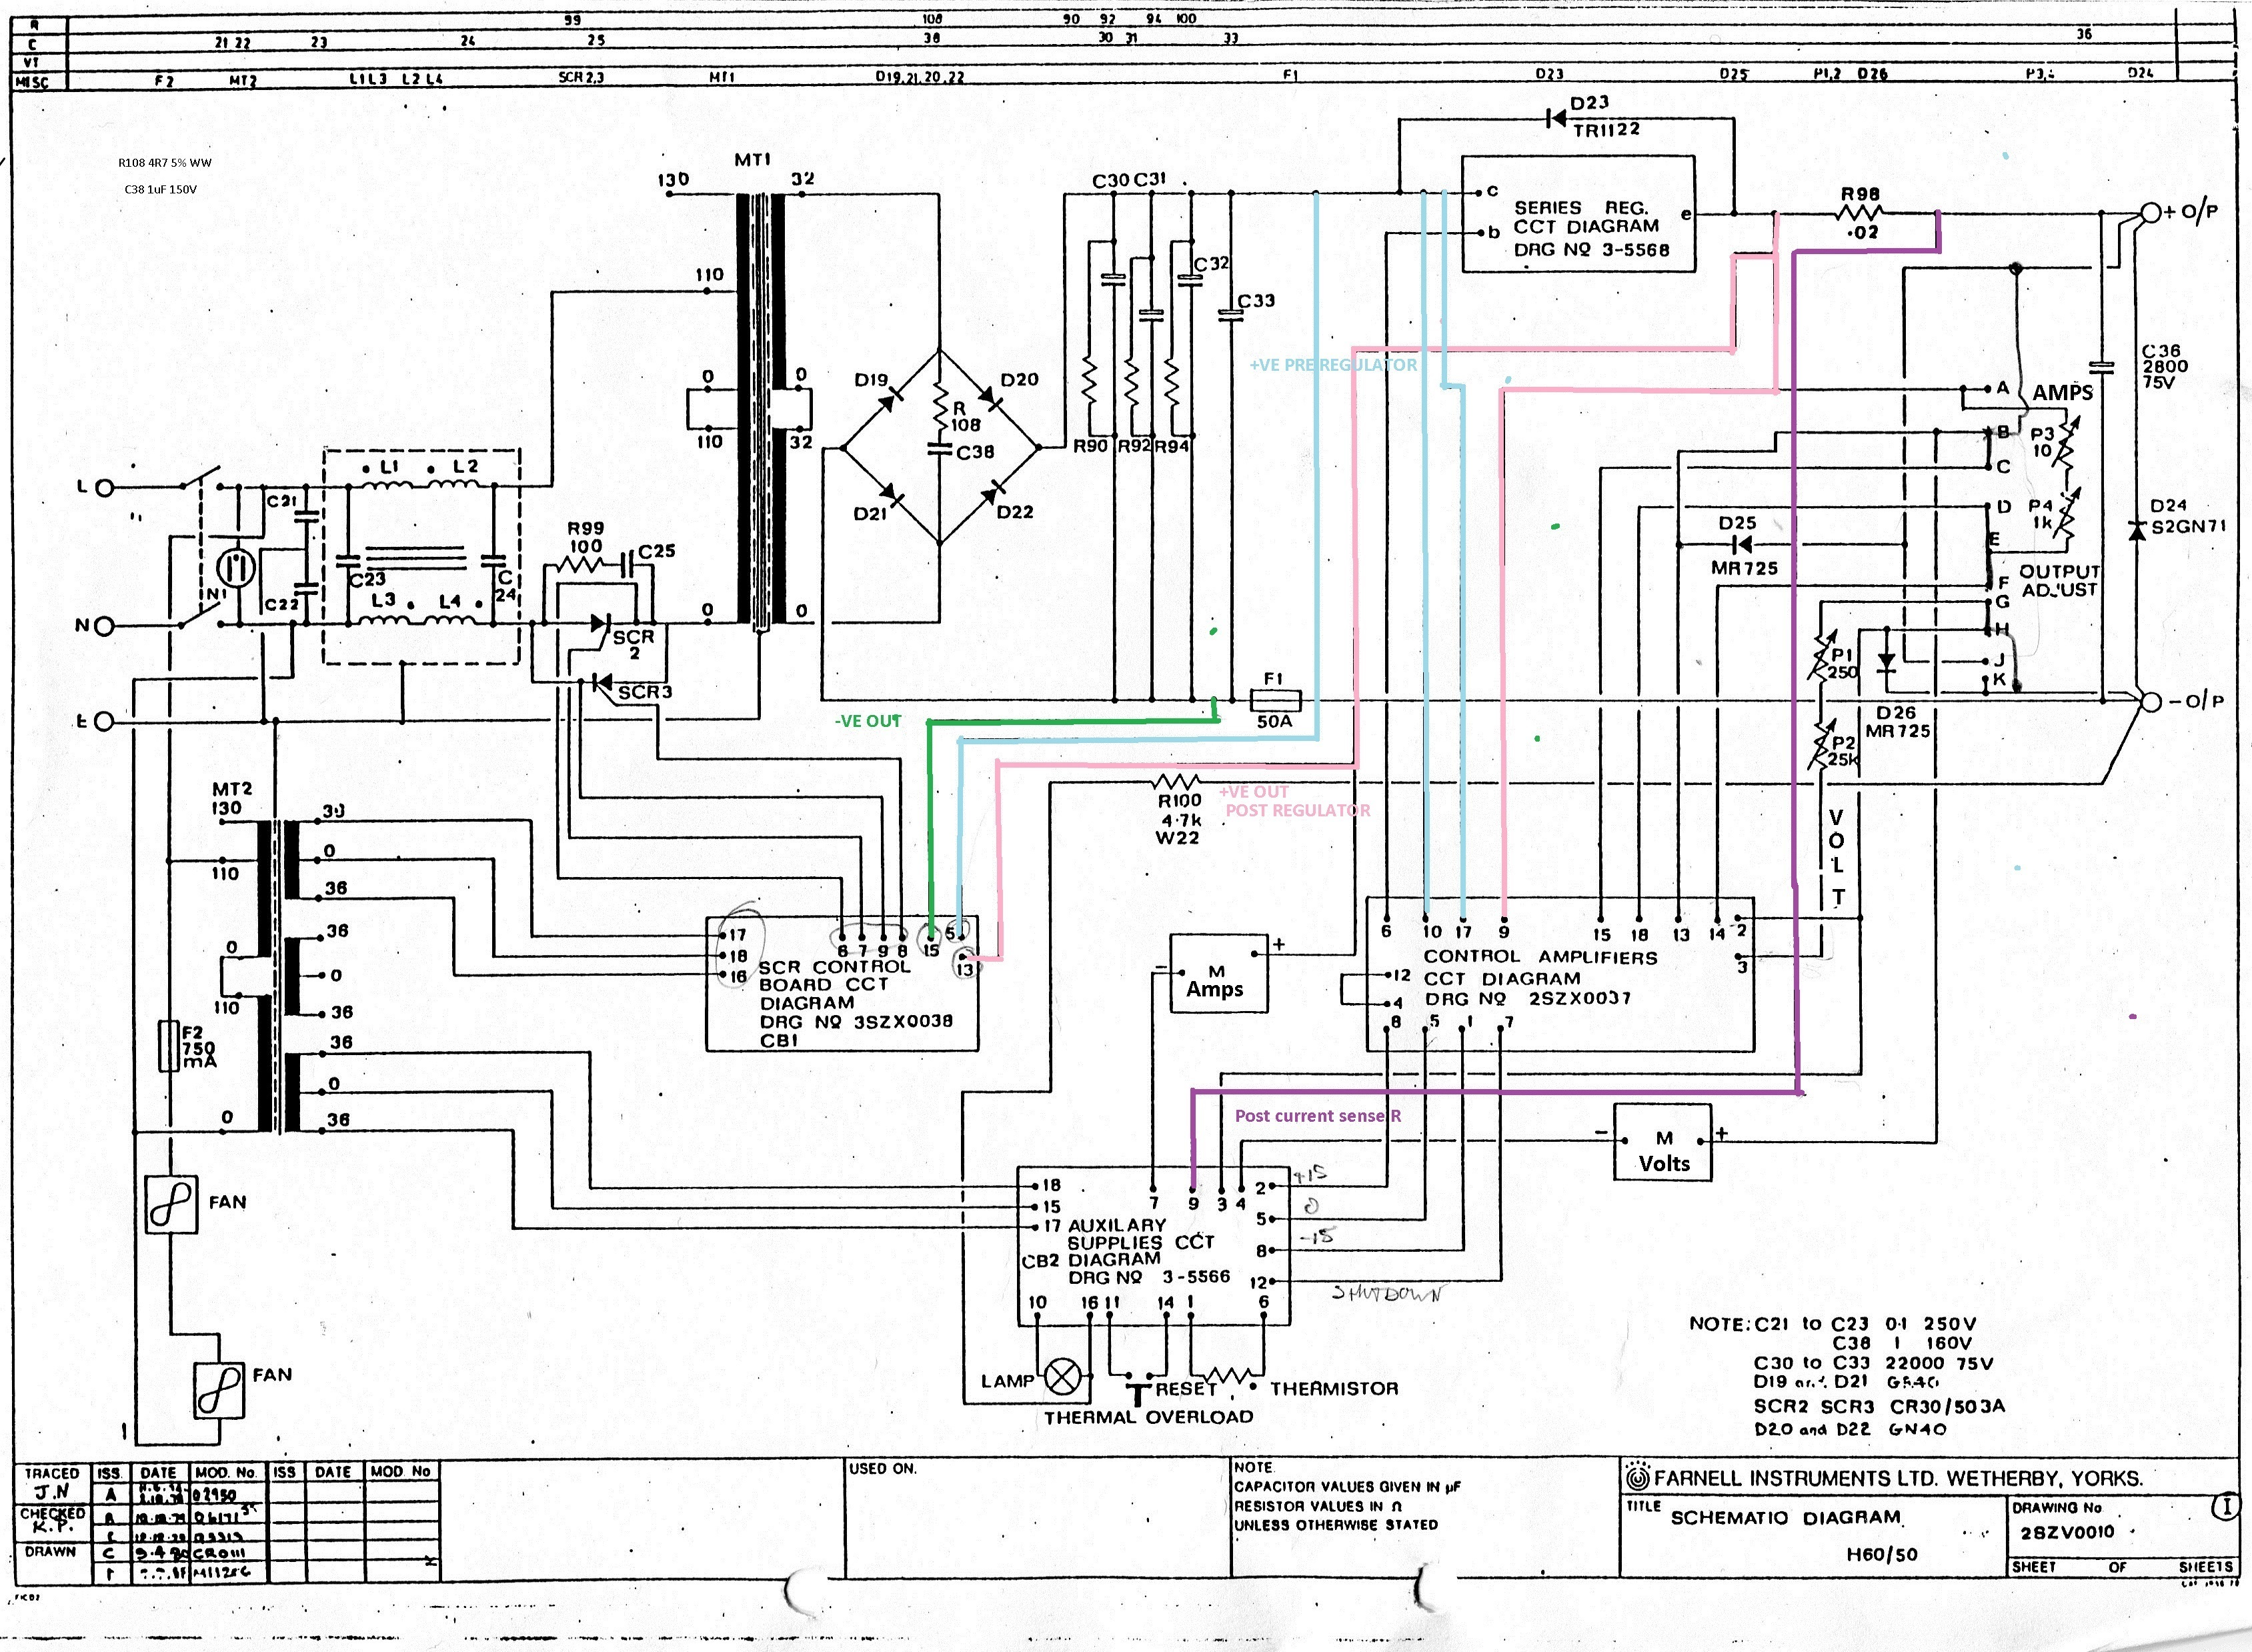 Large Farnell Psu Trouble Shooting Question Page 1 Schematic Block Diagram Http Gatesgarthcom H60001